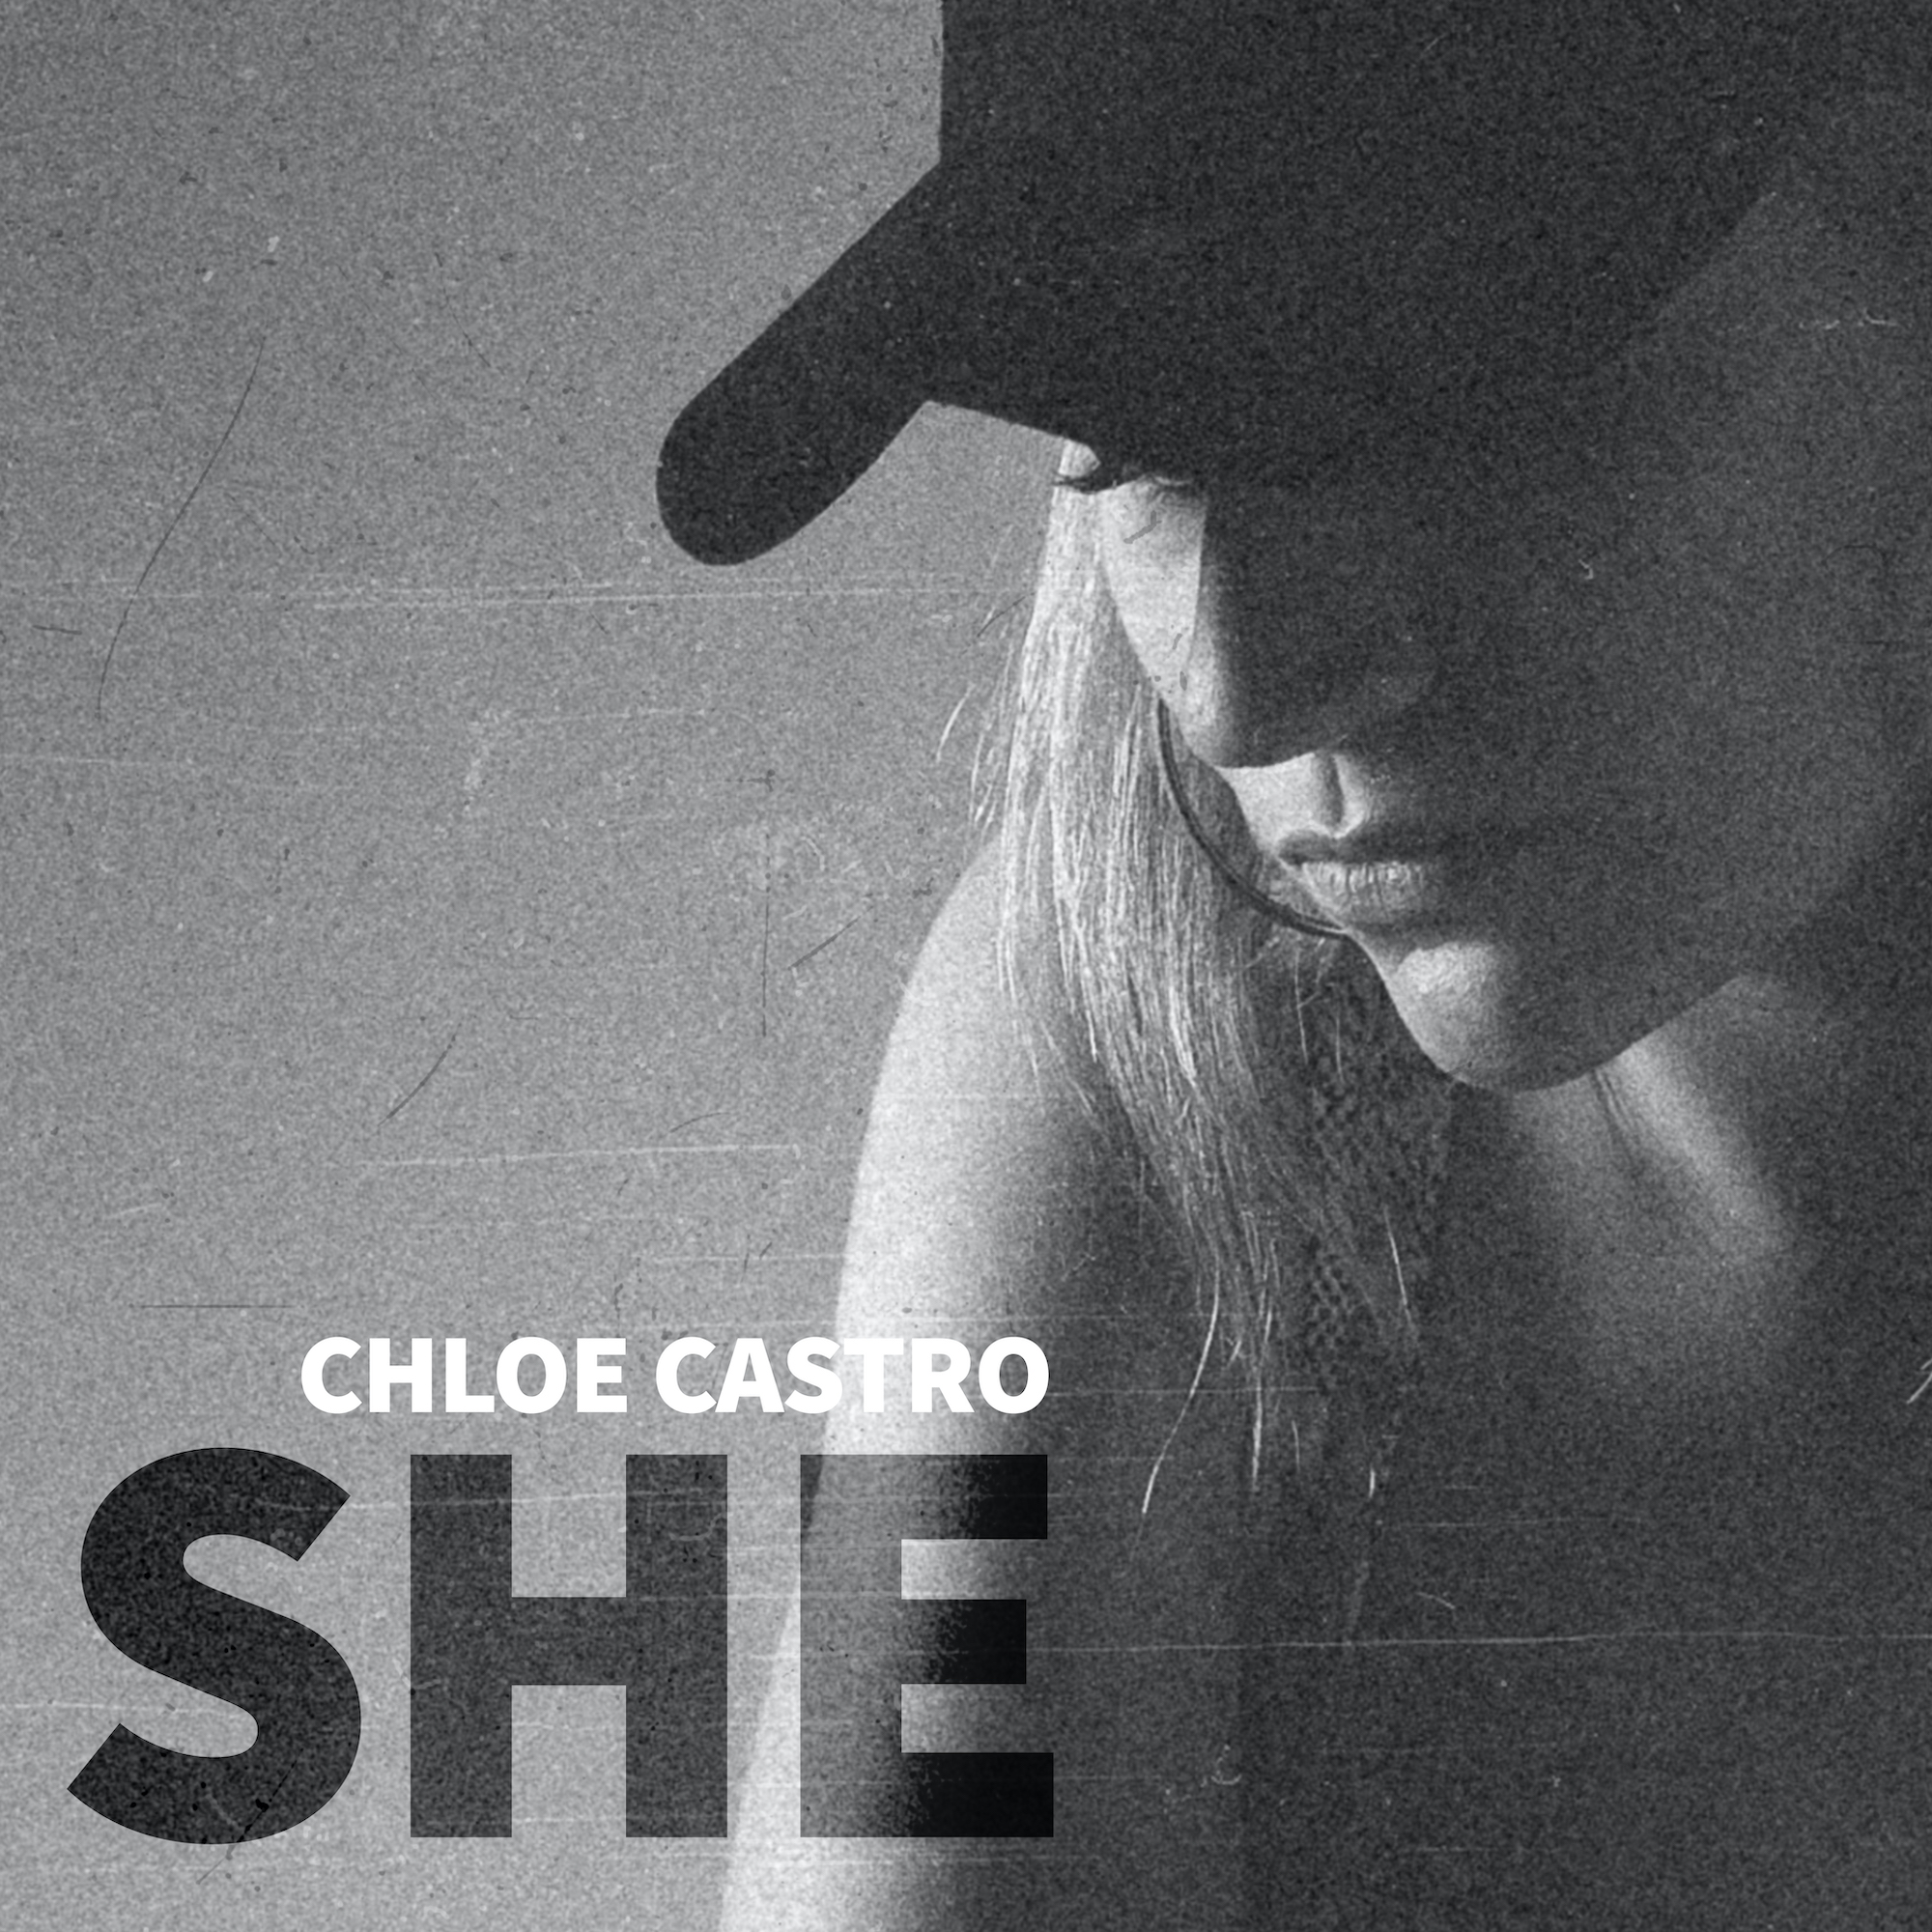 Chloe Castro drops new single She